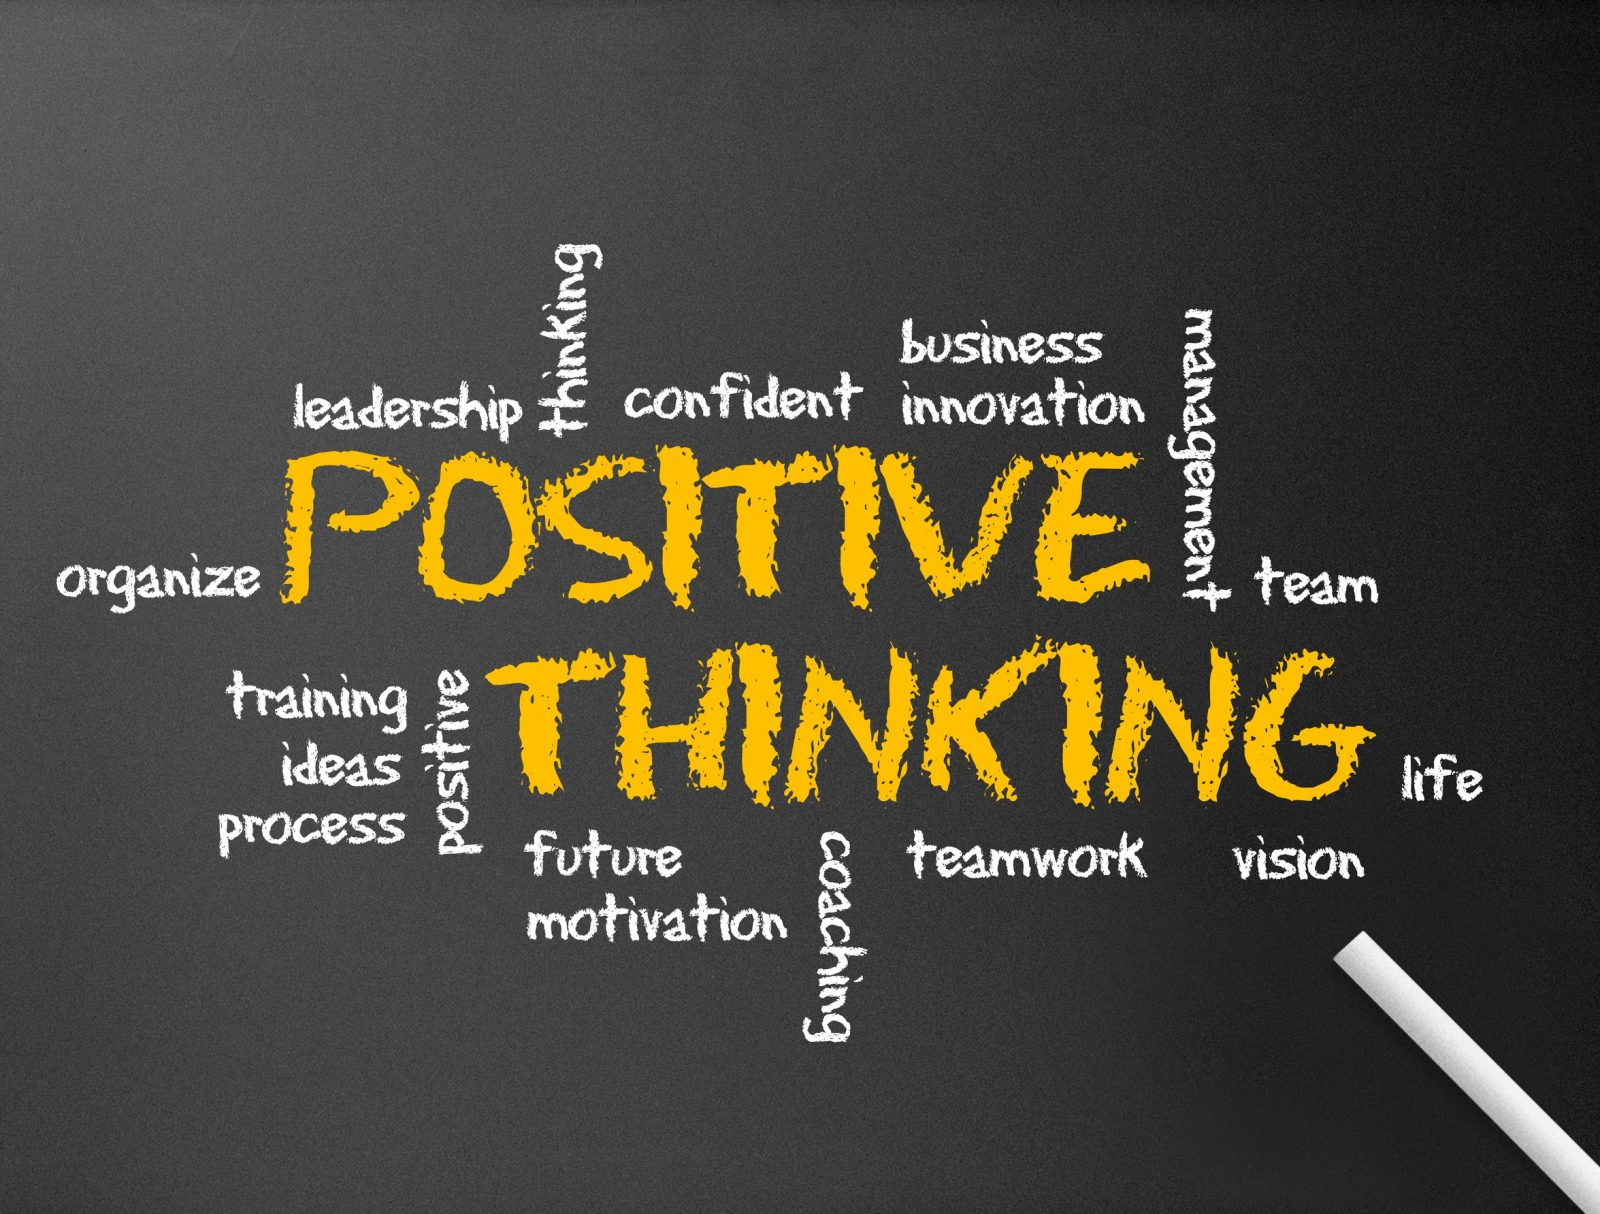 Benefits And Characteristics Of A Positive Work Environment